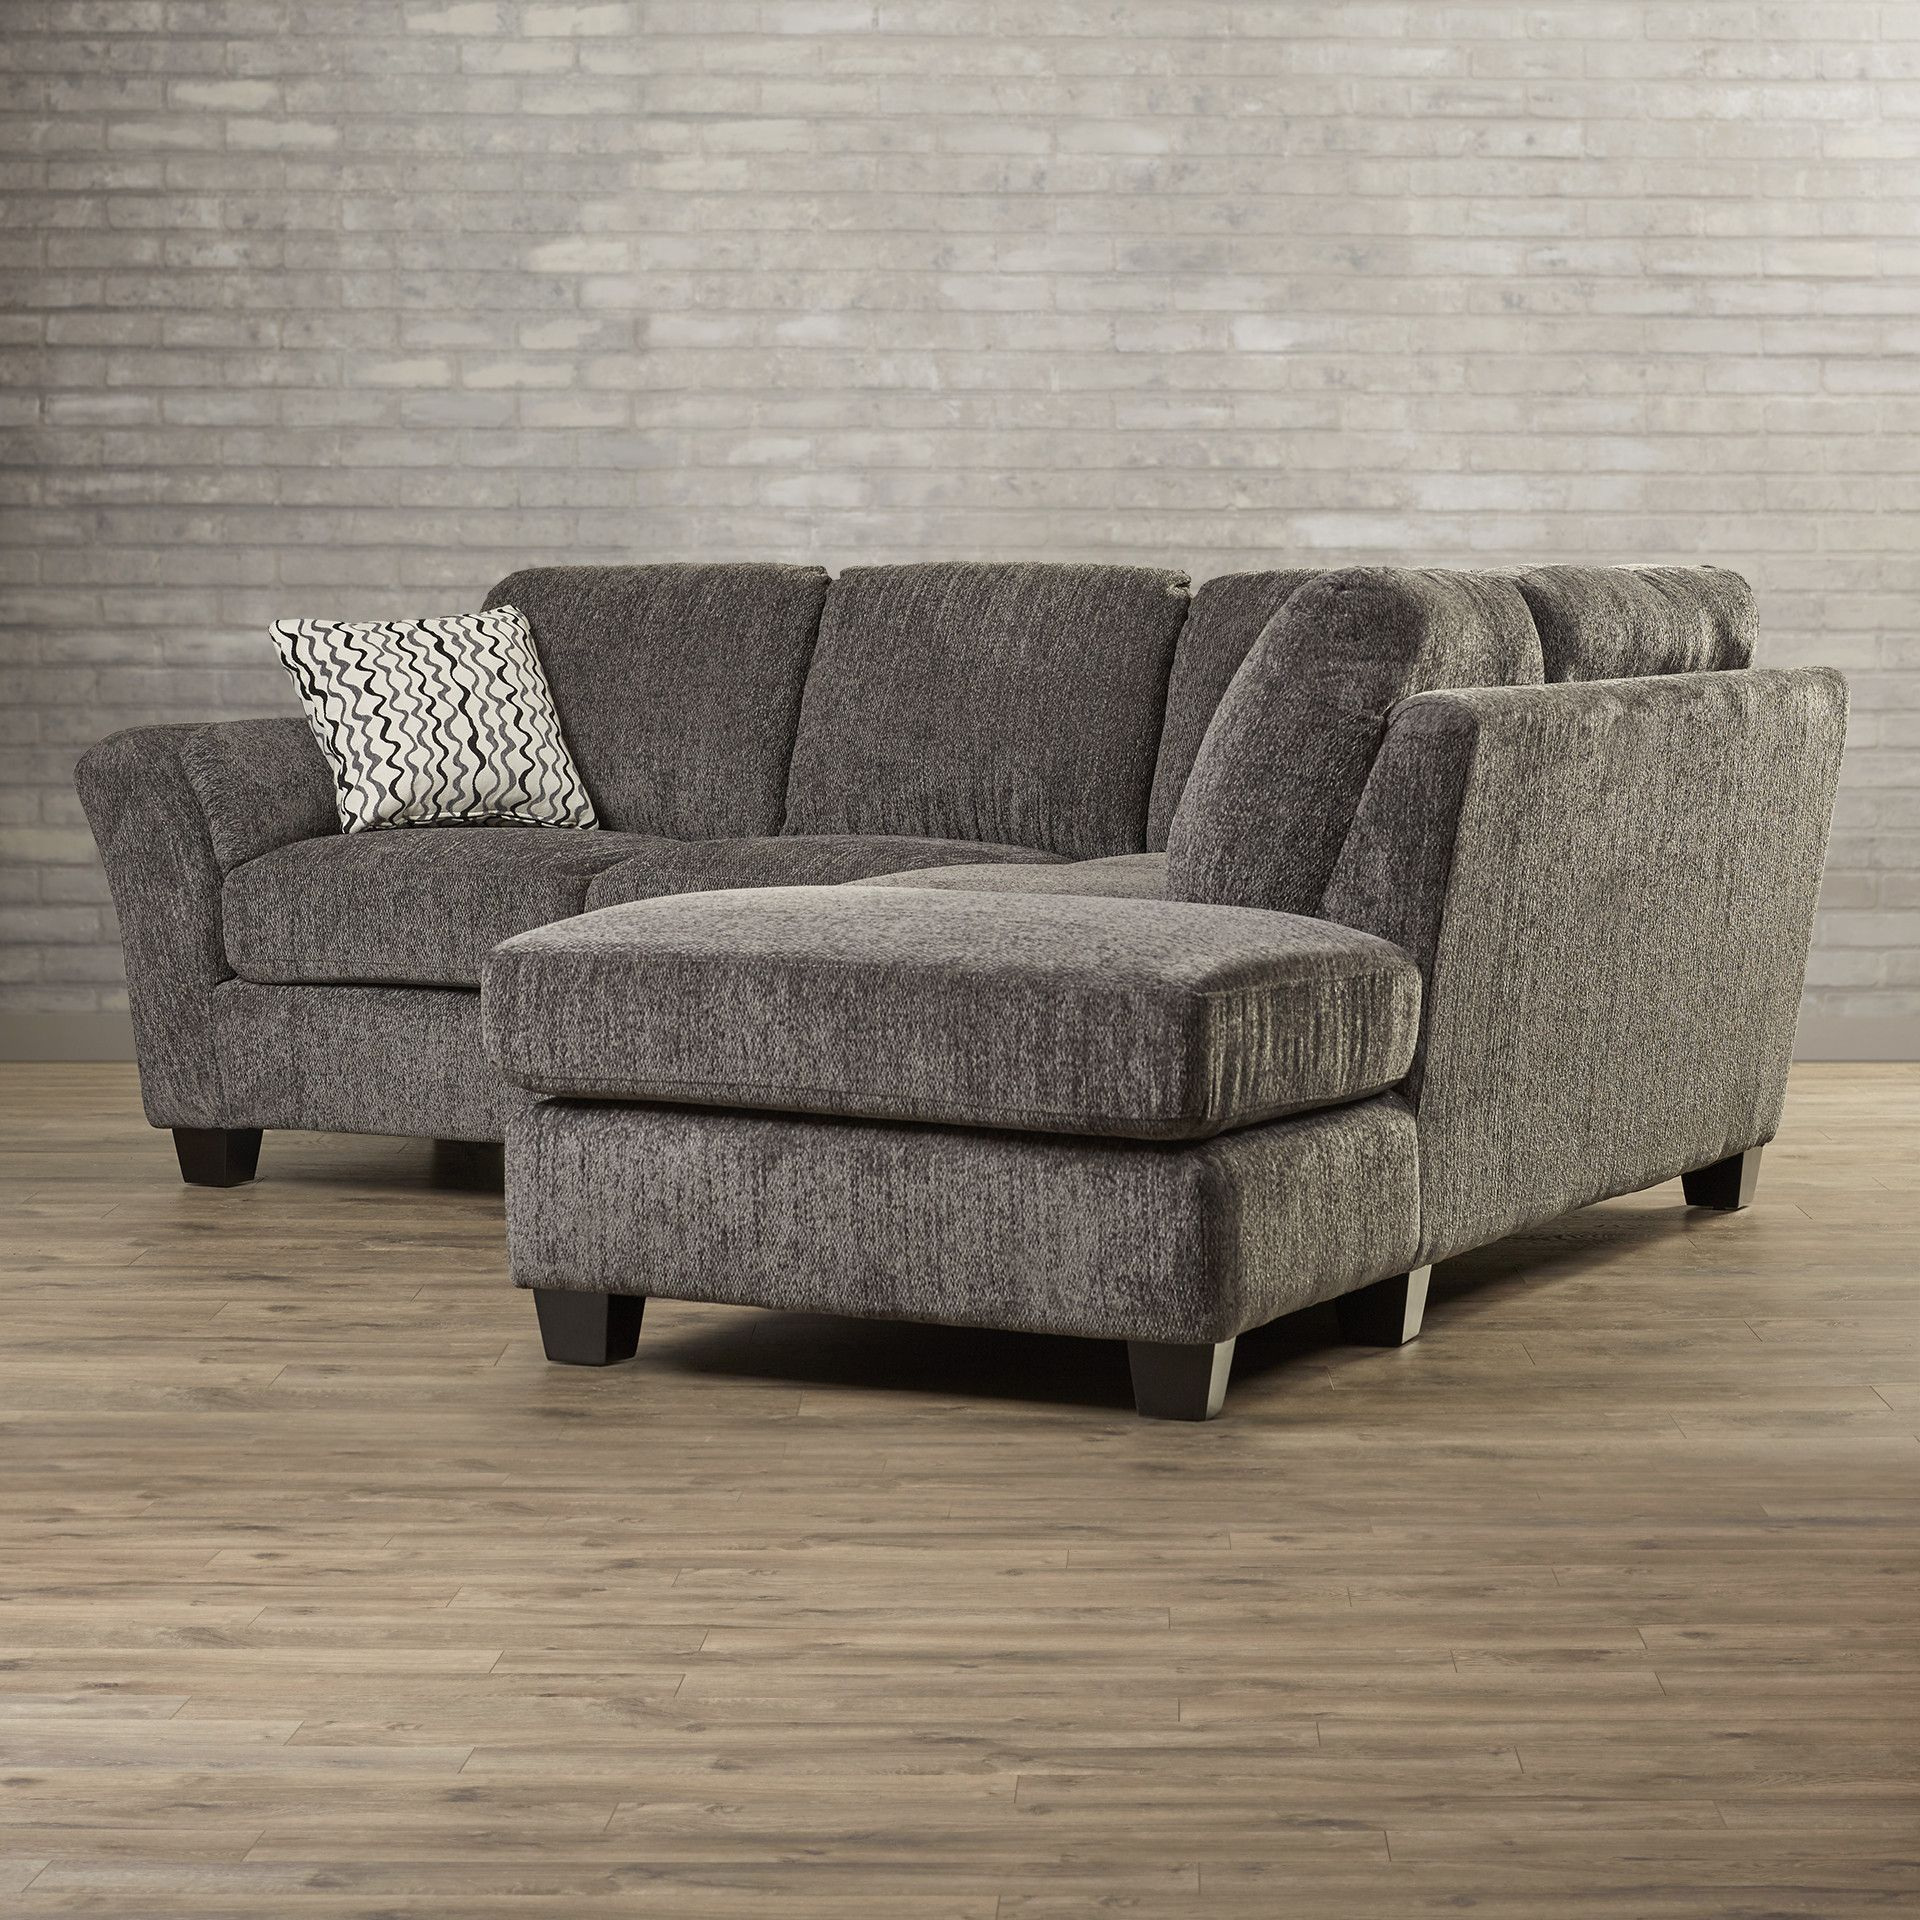 Shop Wayfair for Sectional Sofas to match every style and ...